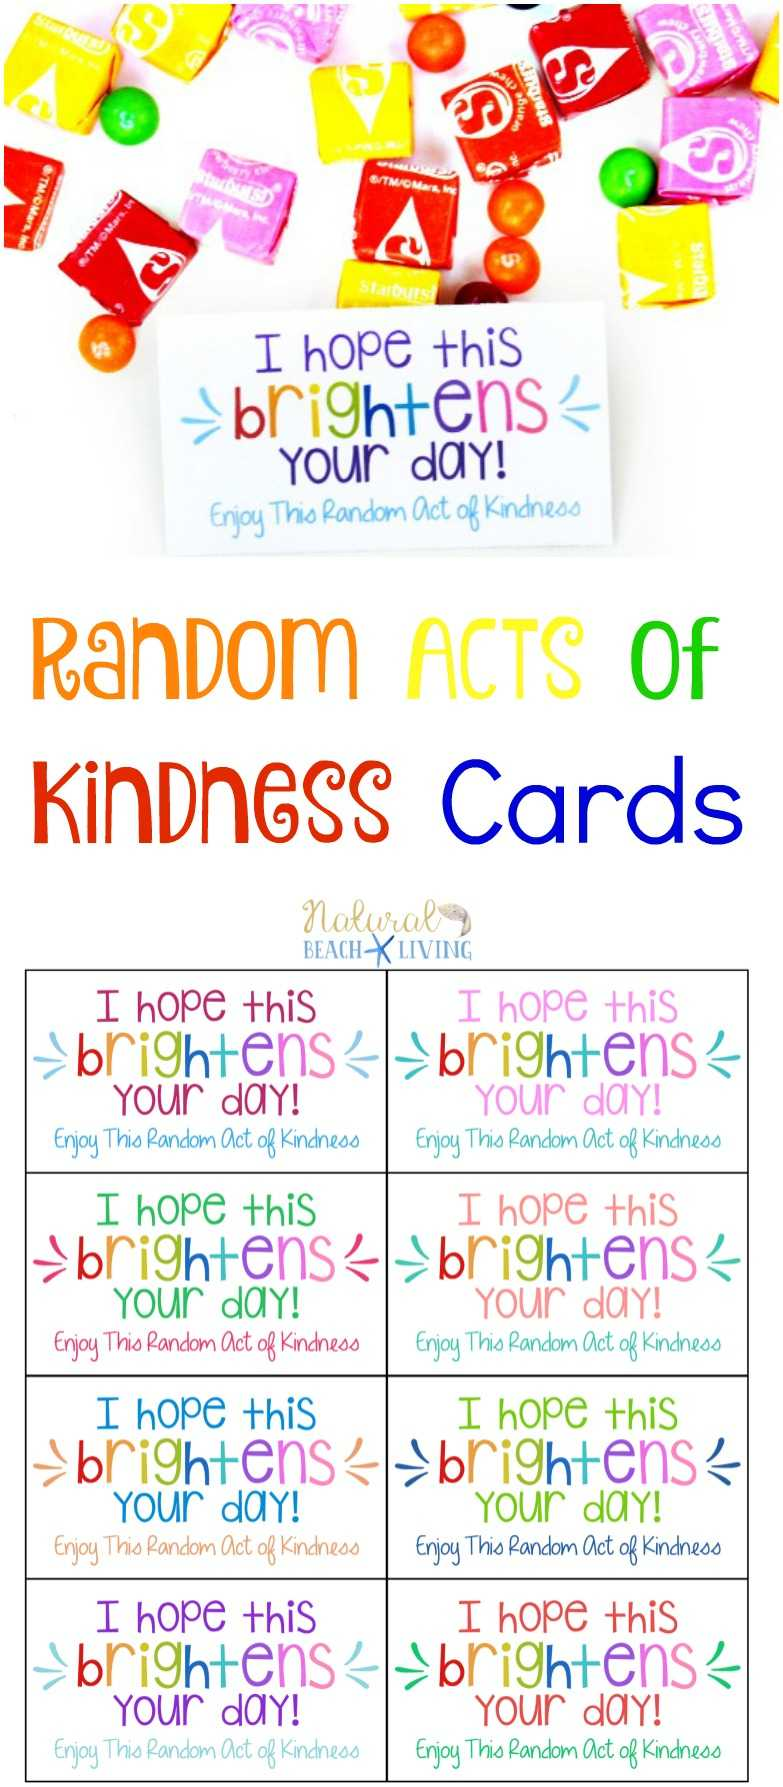 The Best Random Acts Of Kindness Printable Cards Free Inside Random Acts Of Kindness Cards Templates